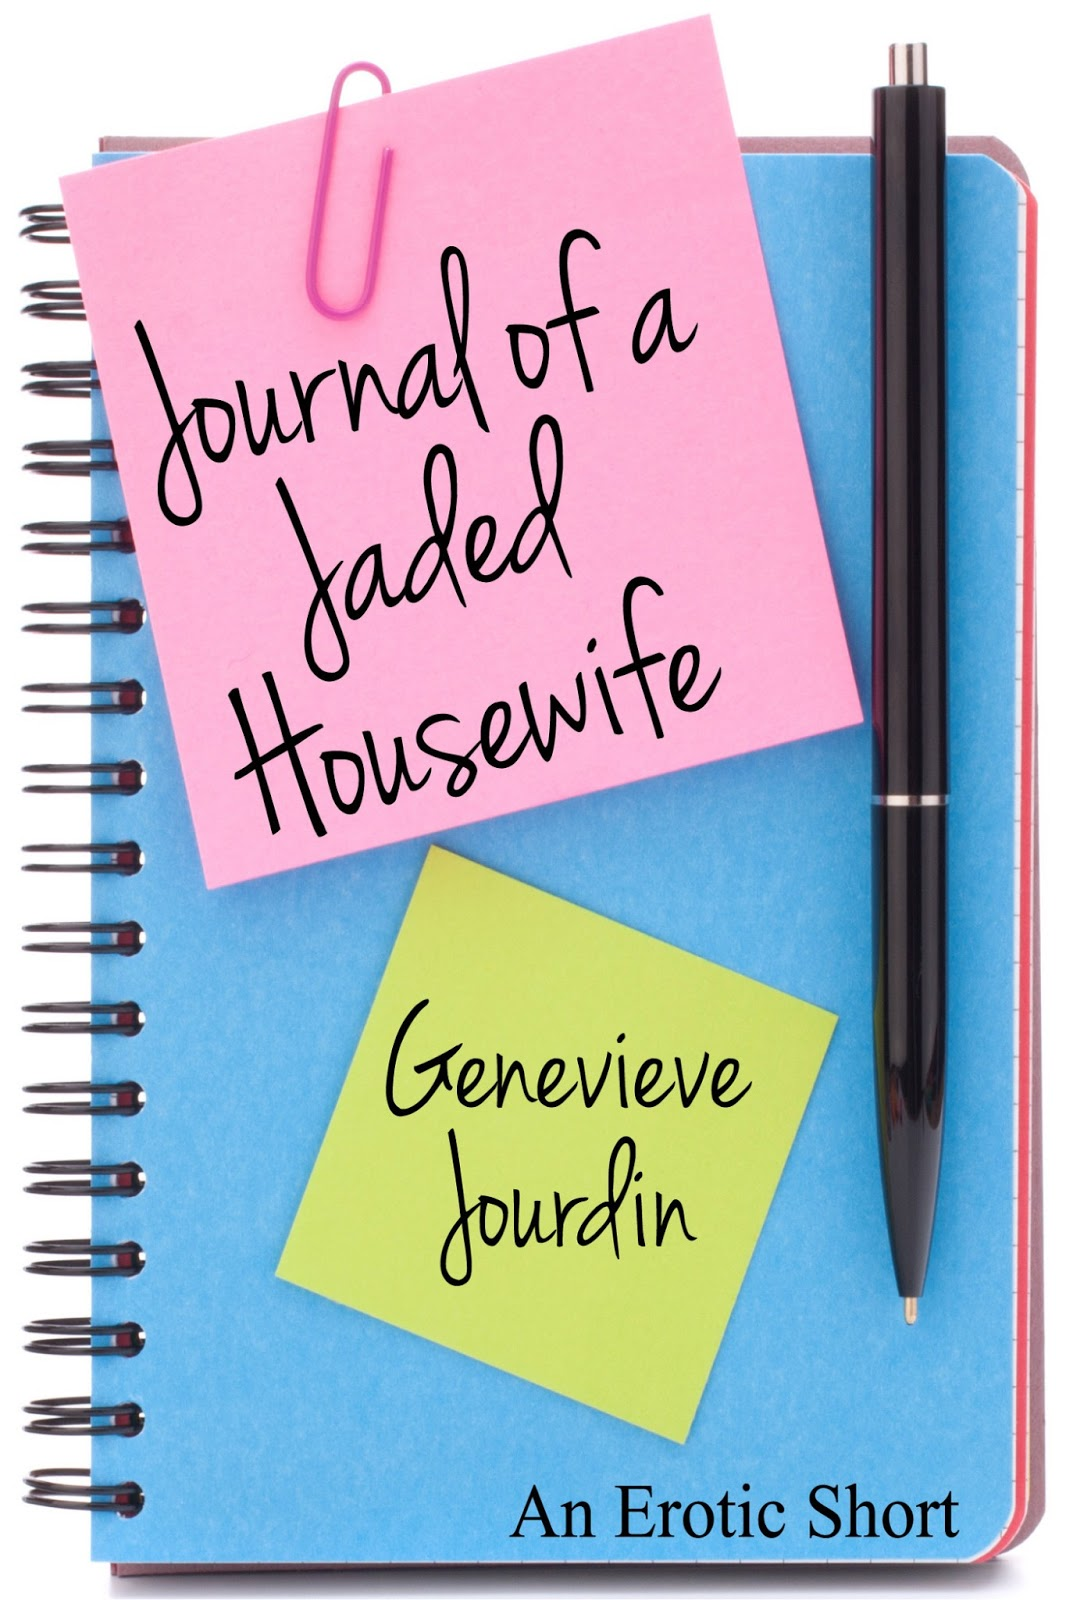 Journal of a Jaded Housewife